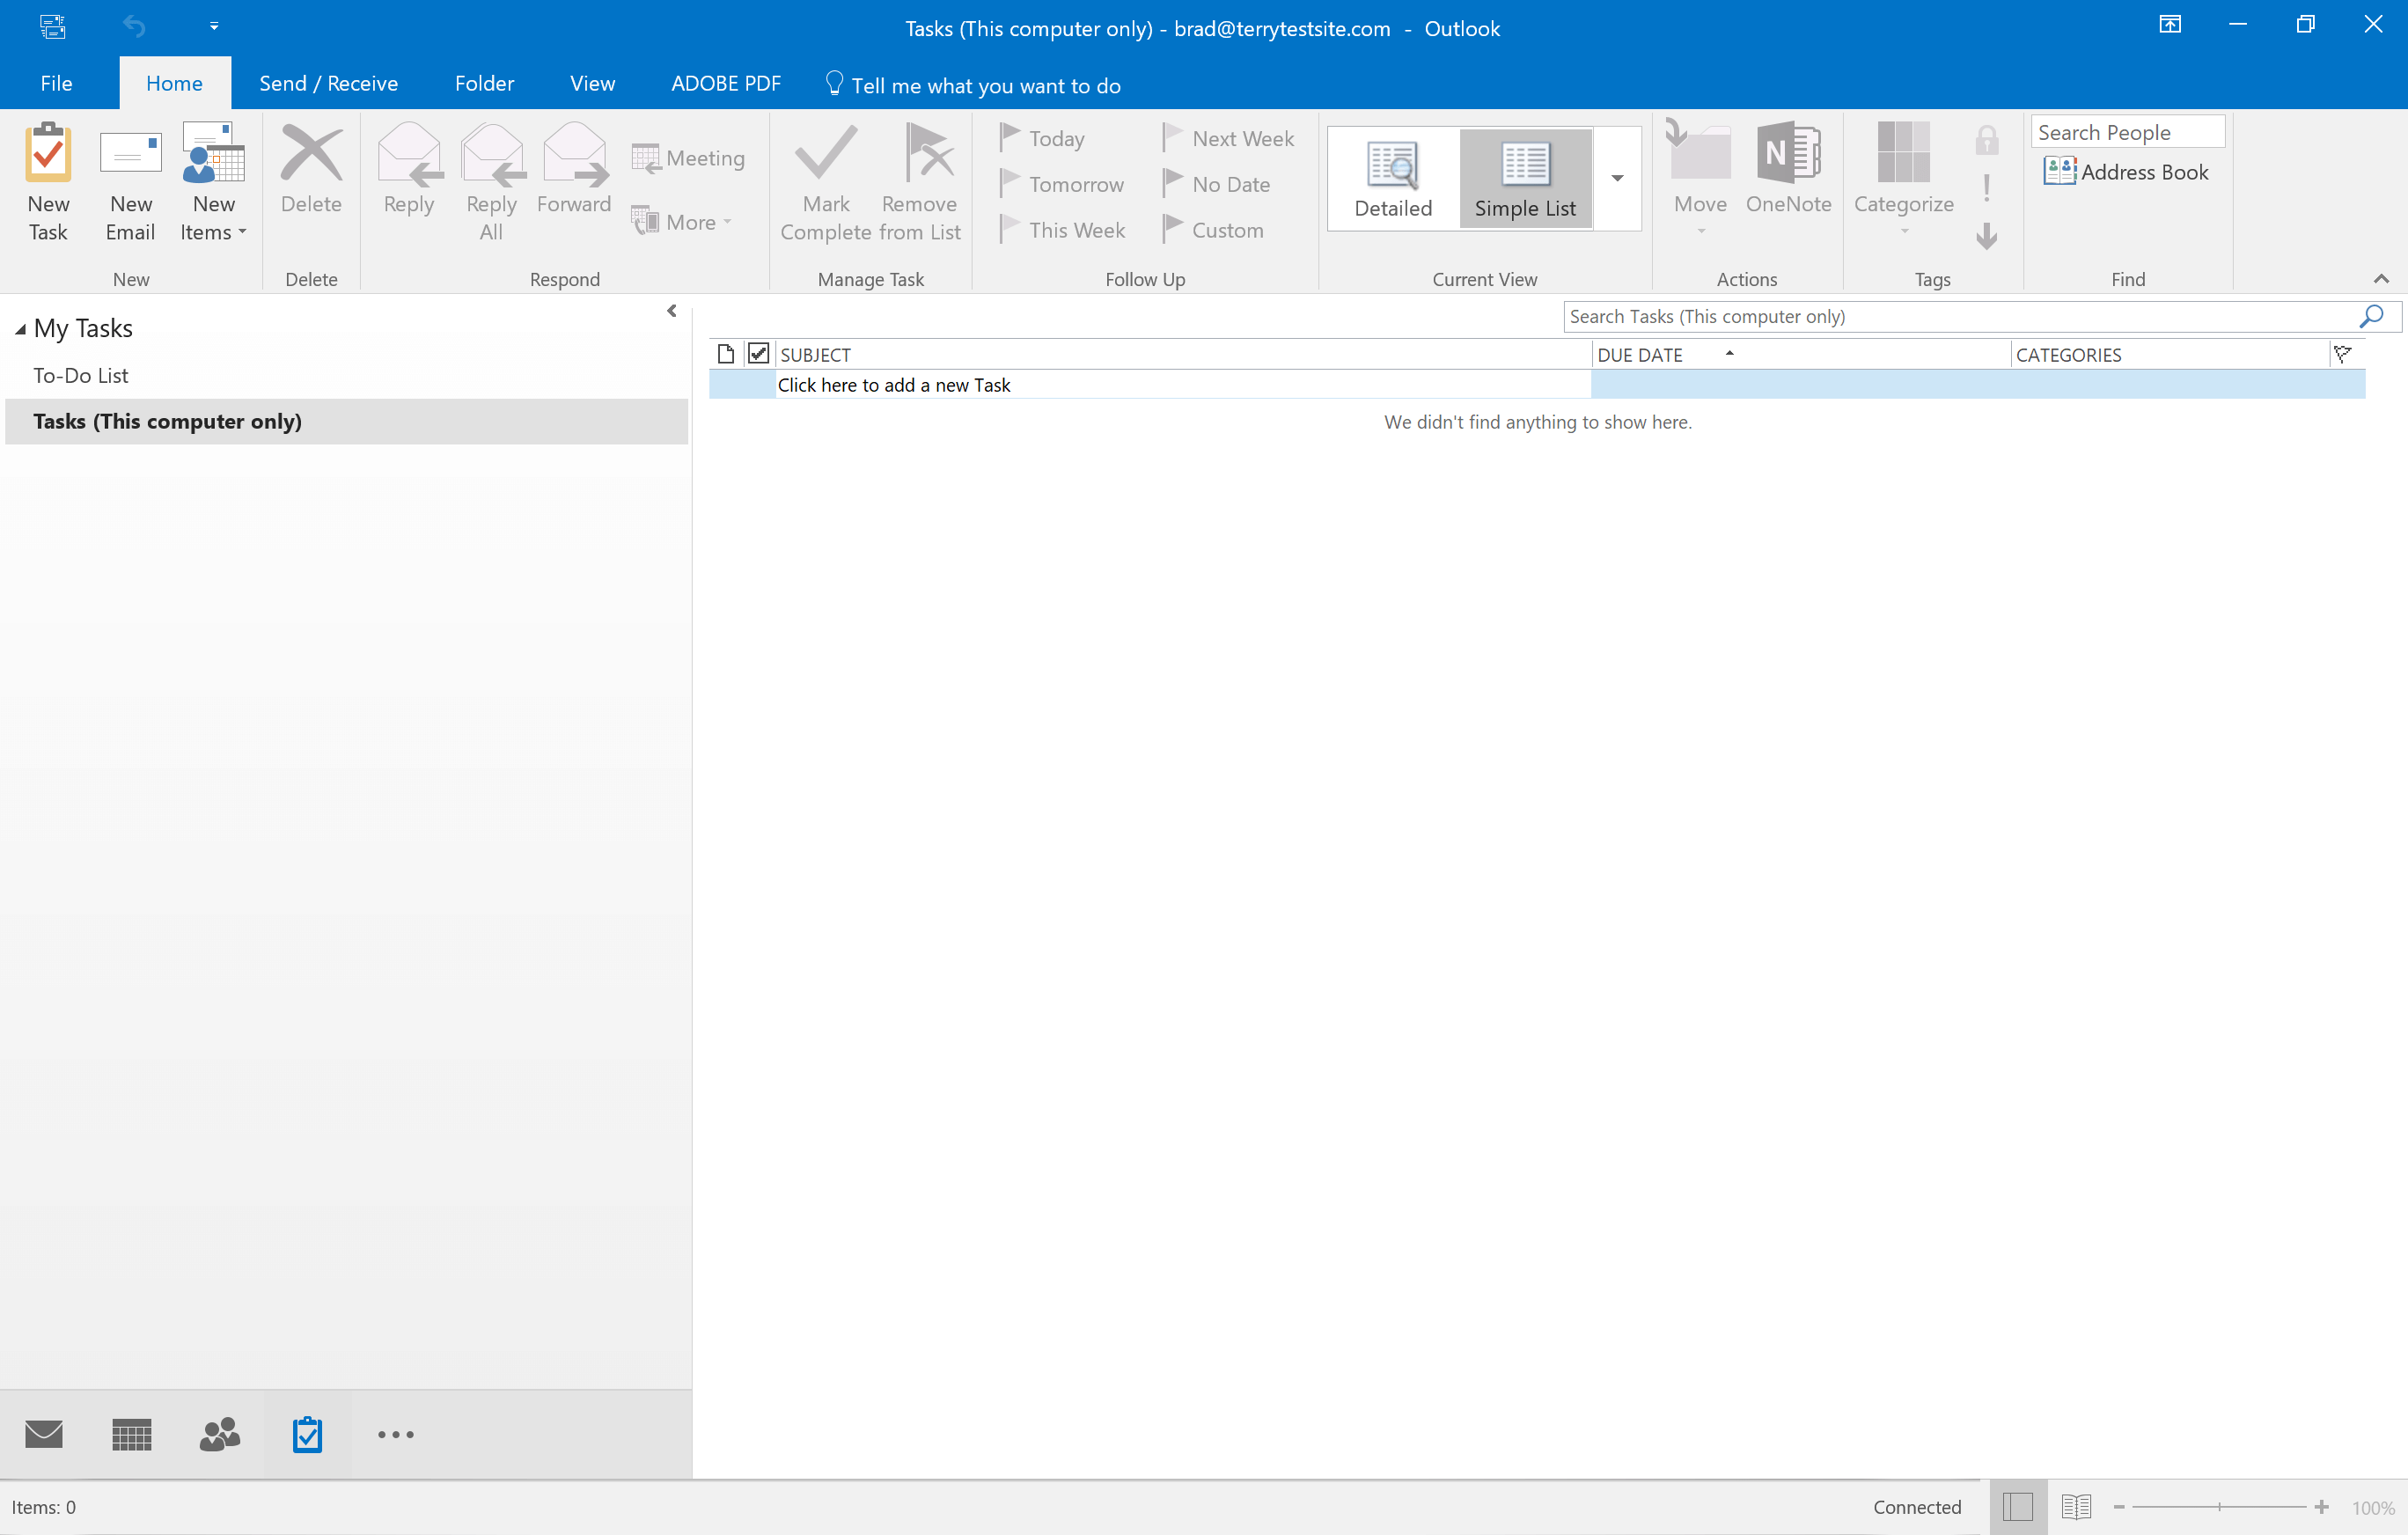 How to view tasks and to-do lists in Outlook 2016 - HostPapa